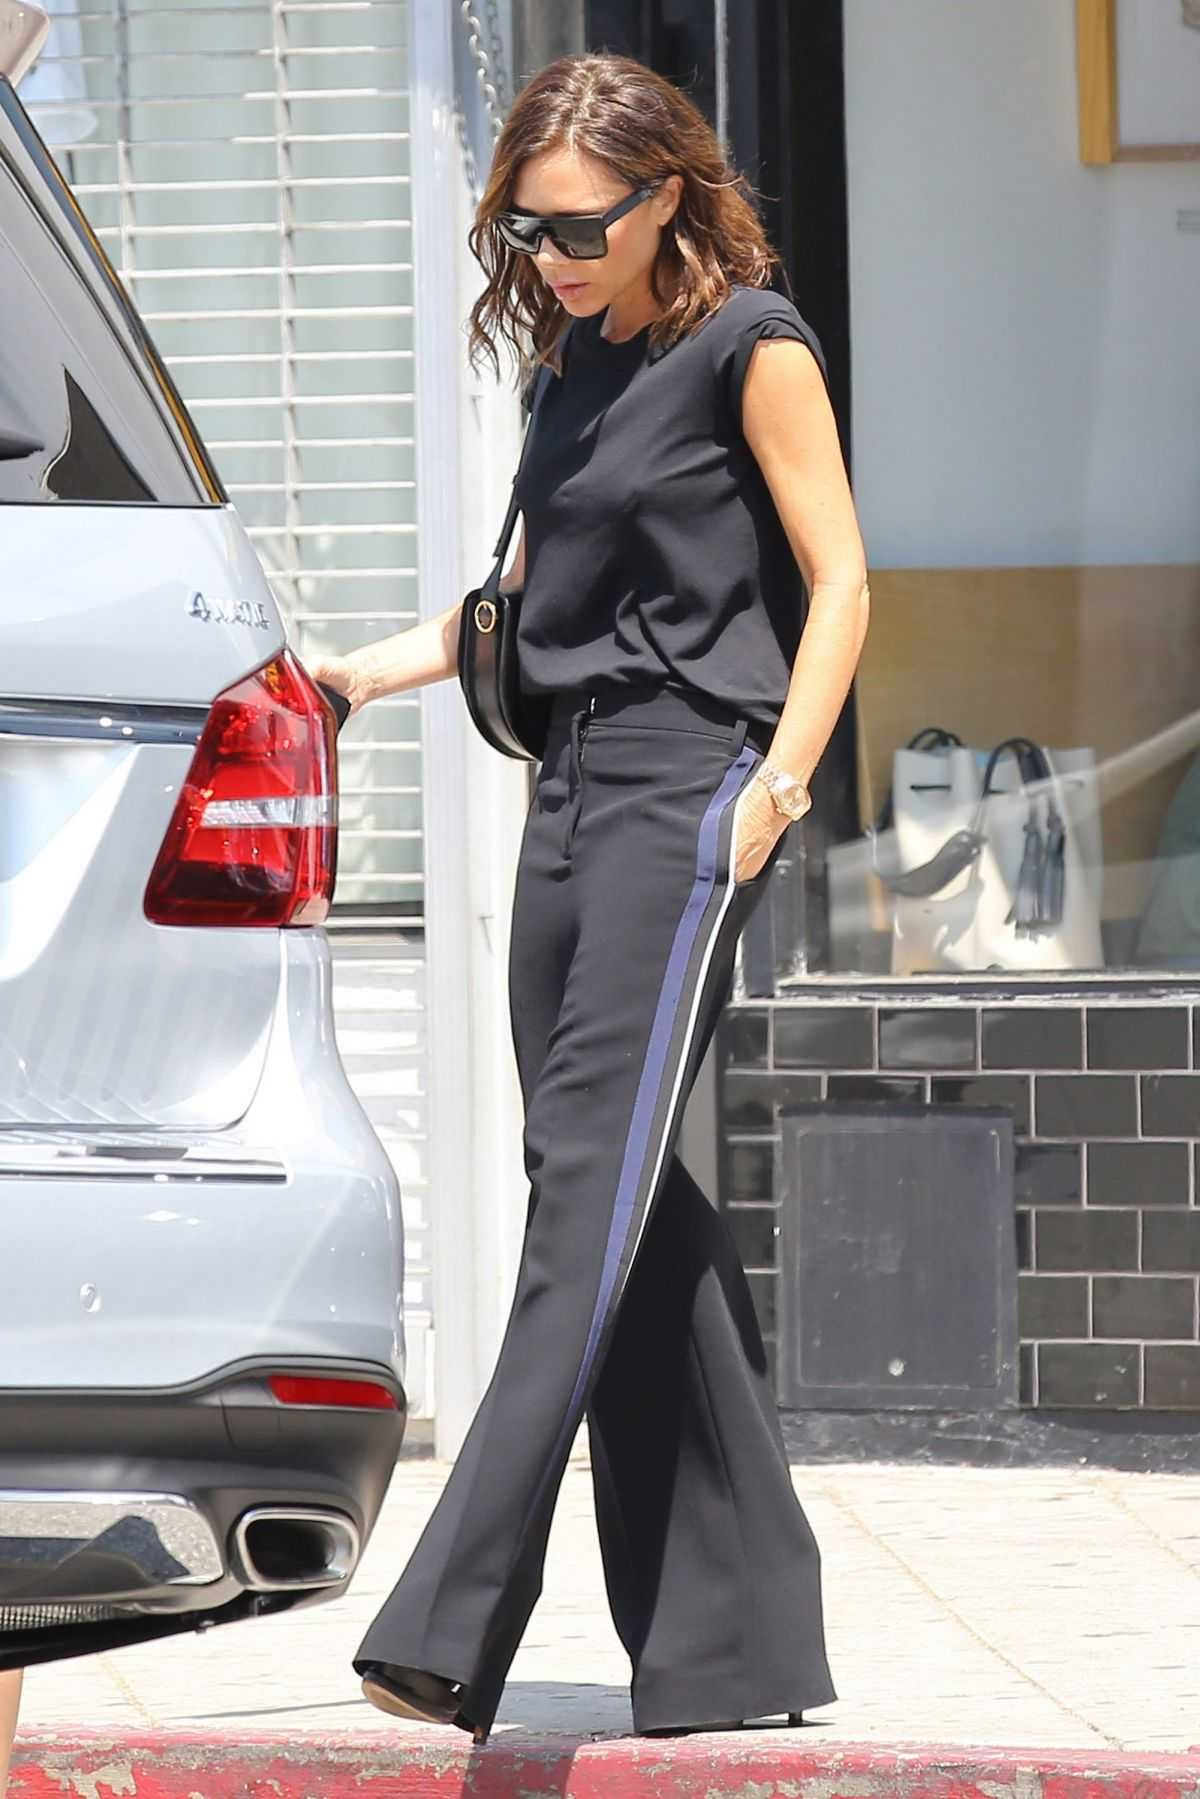 Victoria Beckham Out And About In Los Angeles - August 21, 2016